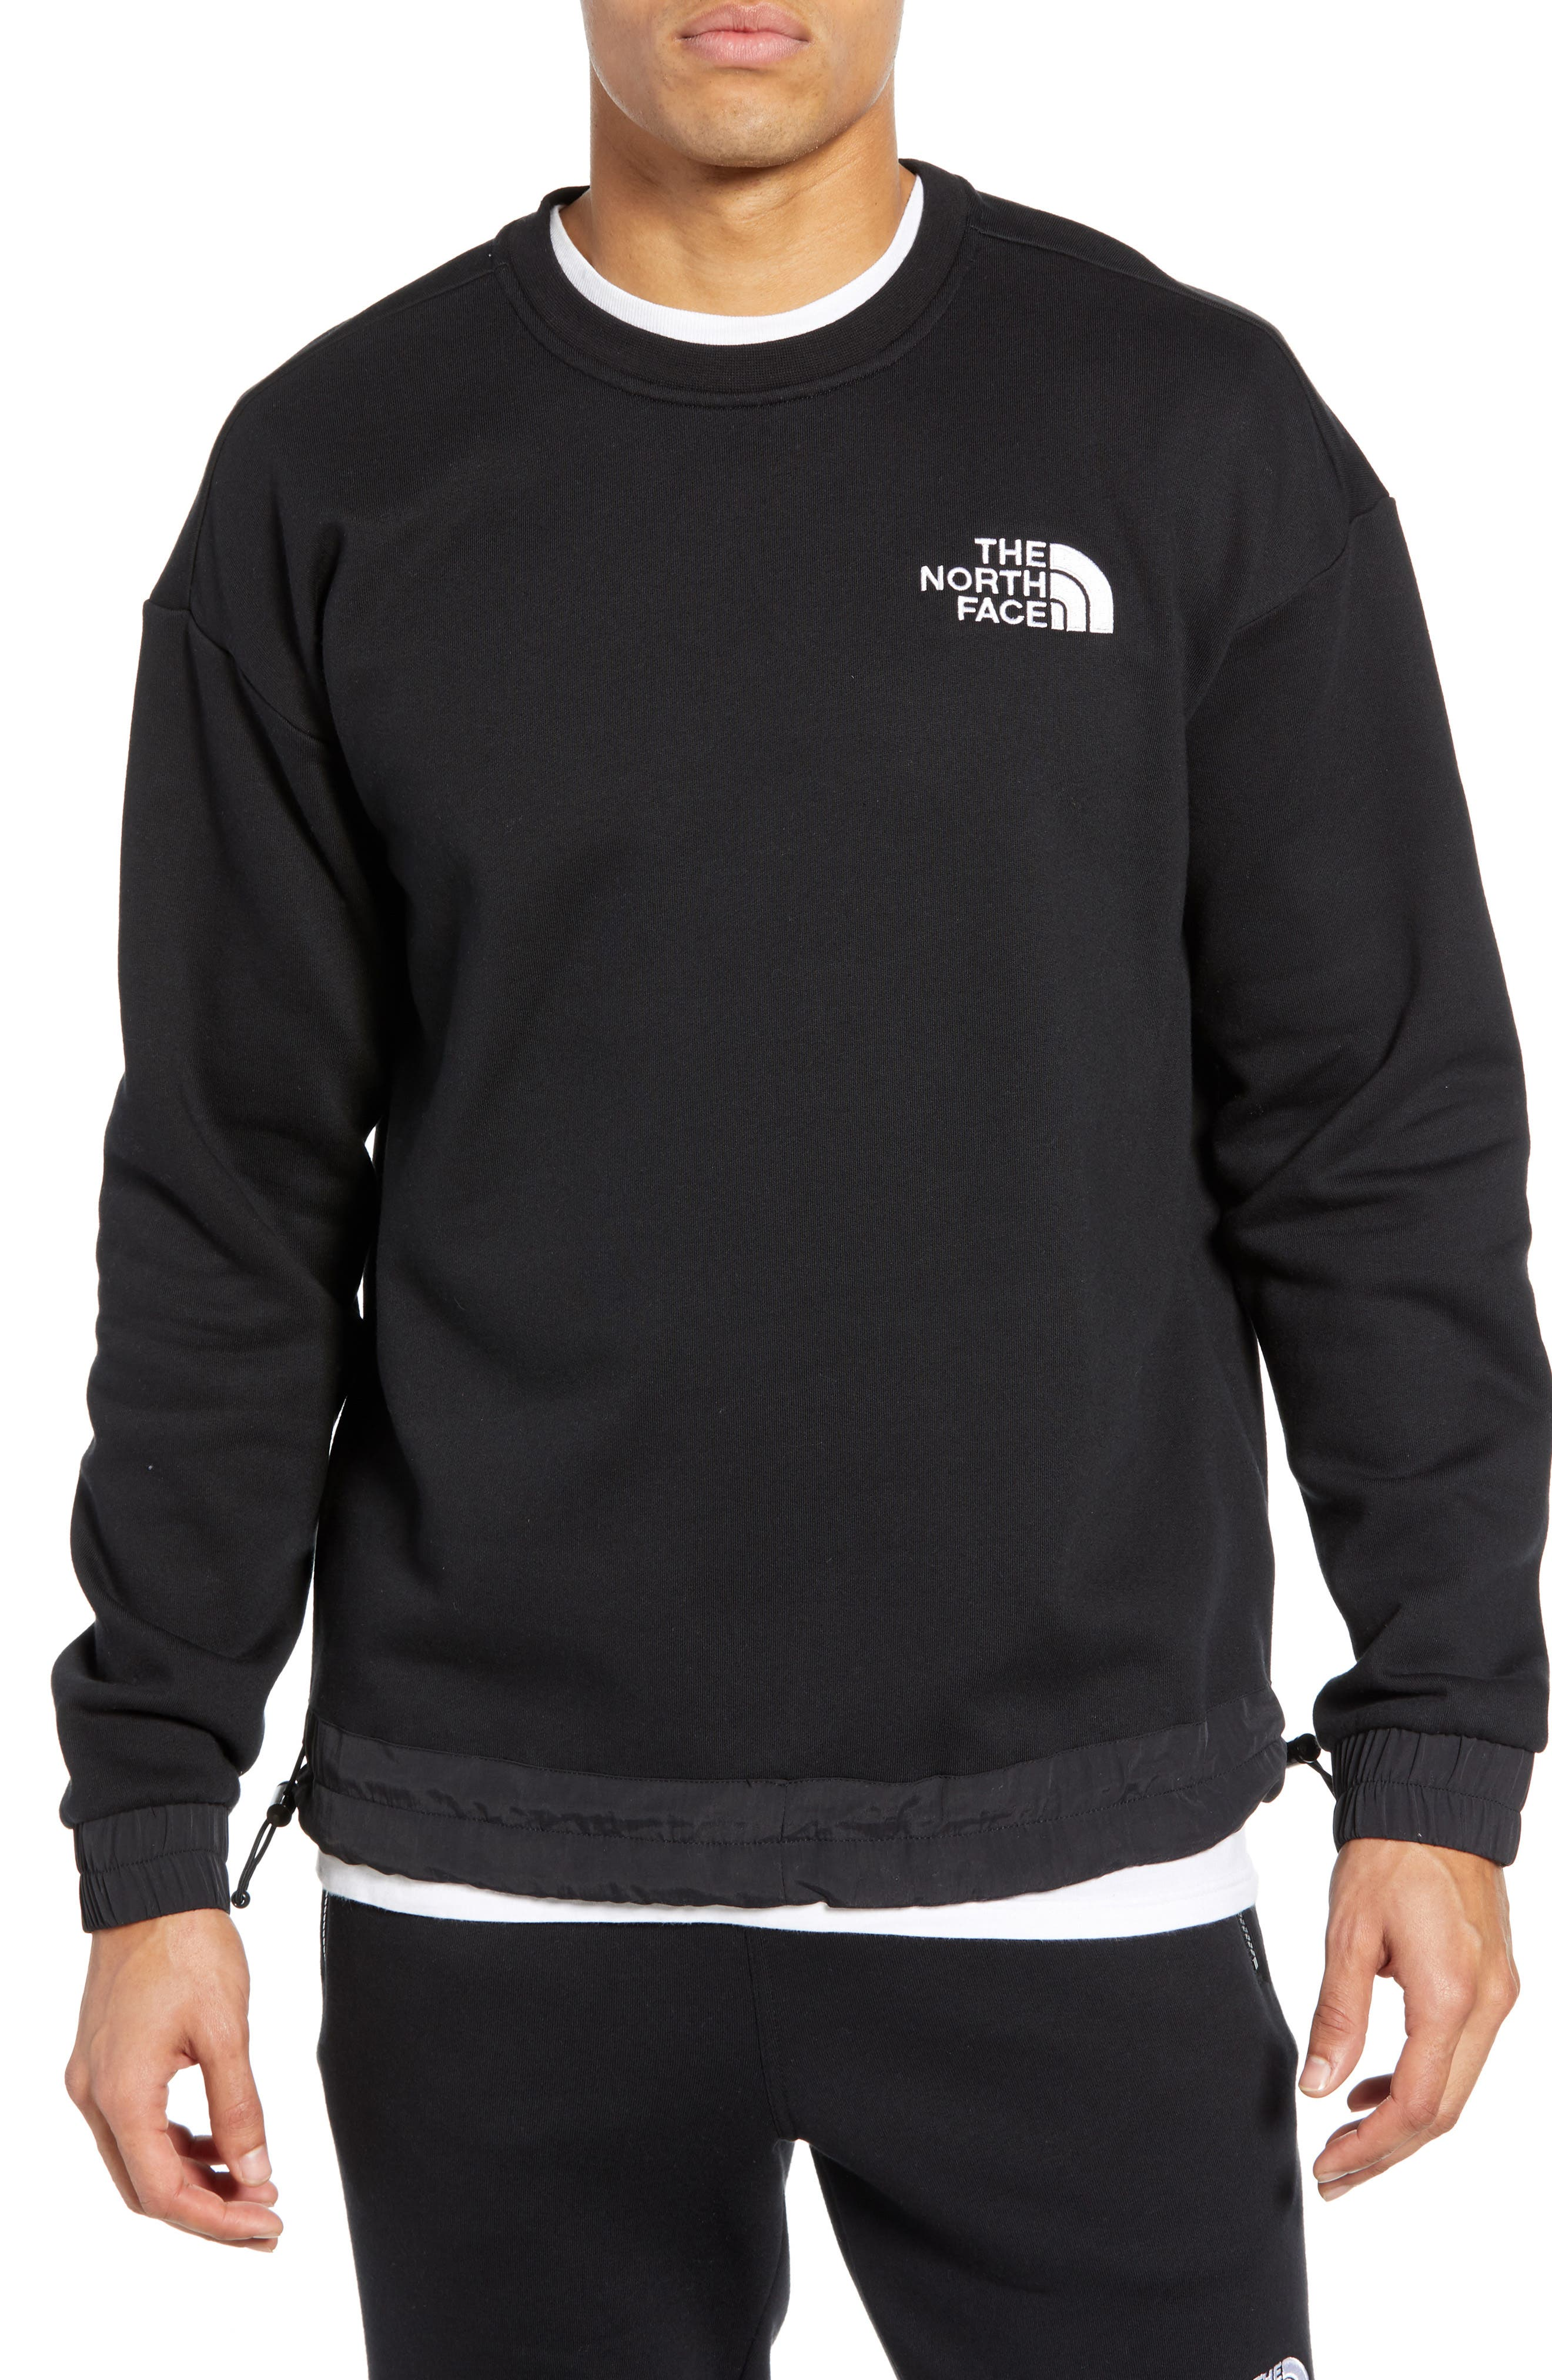 THE NORTH FACE, 1992 Rage Collection Sweatshirt, Main thumbnail 1, color, 001